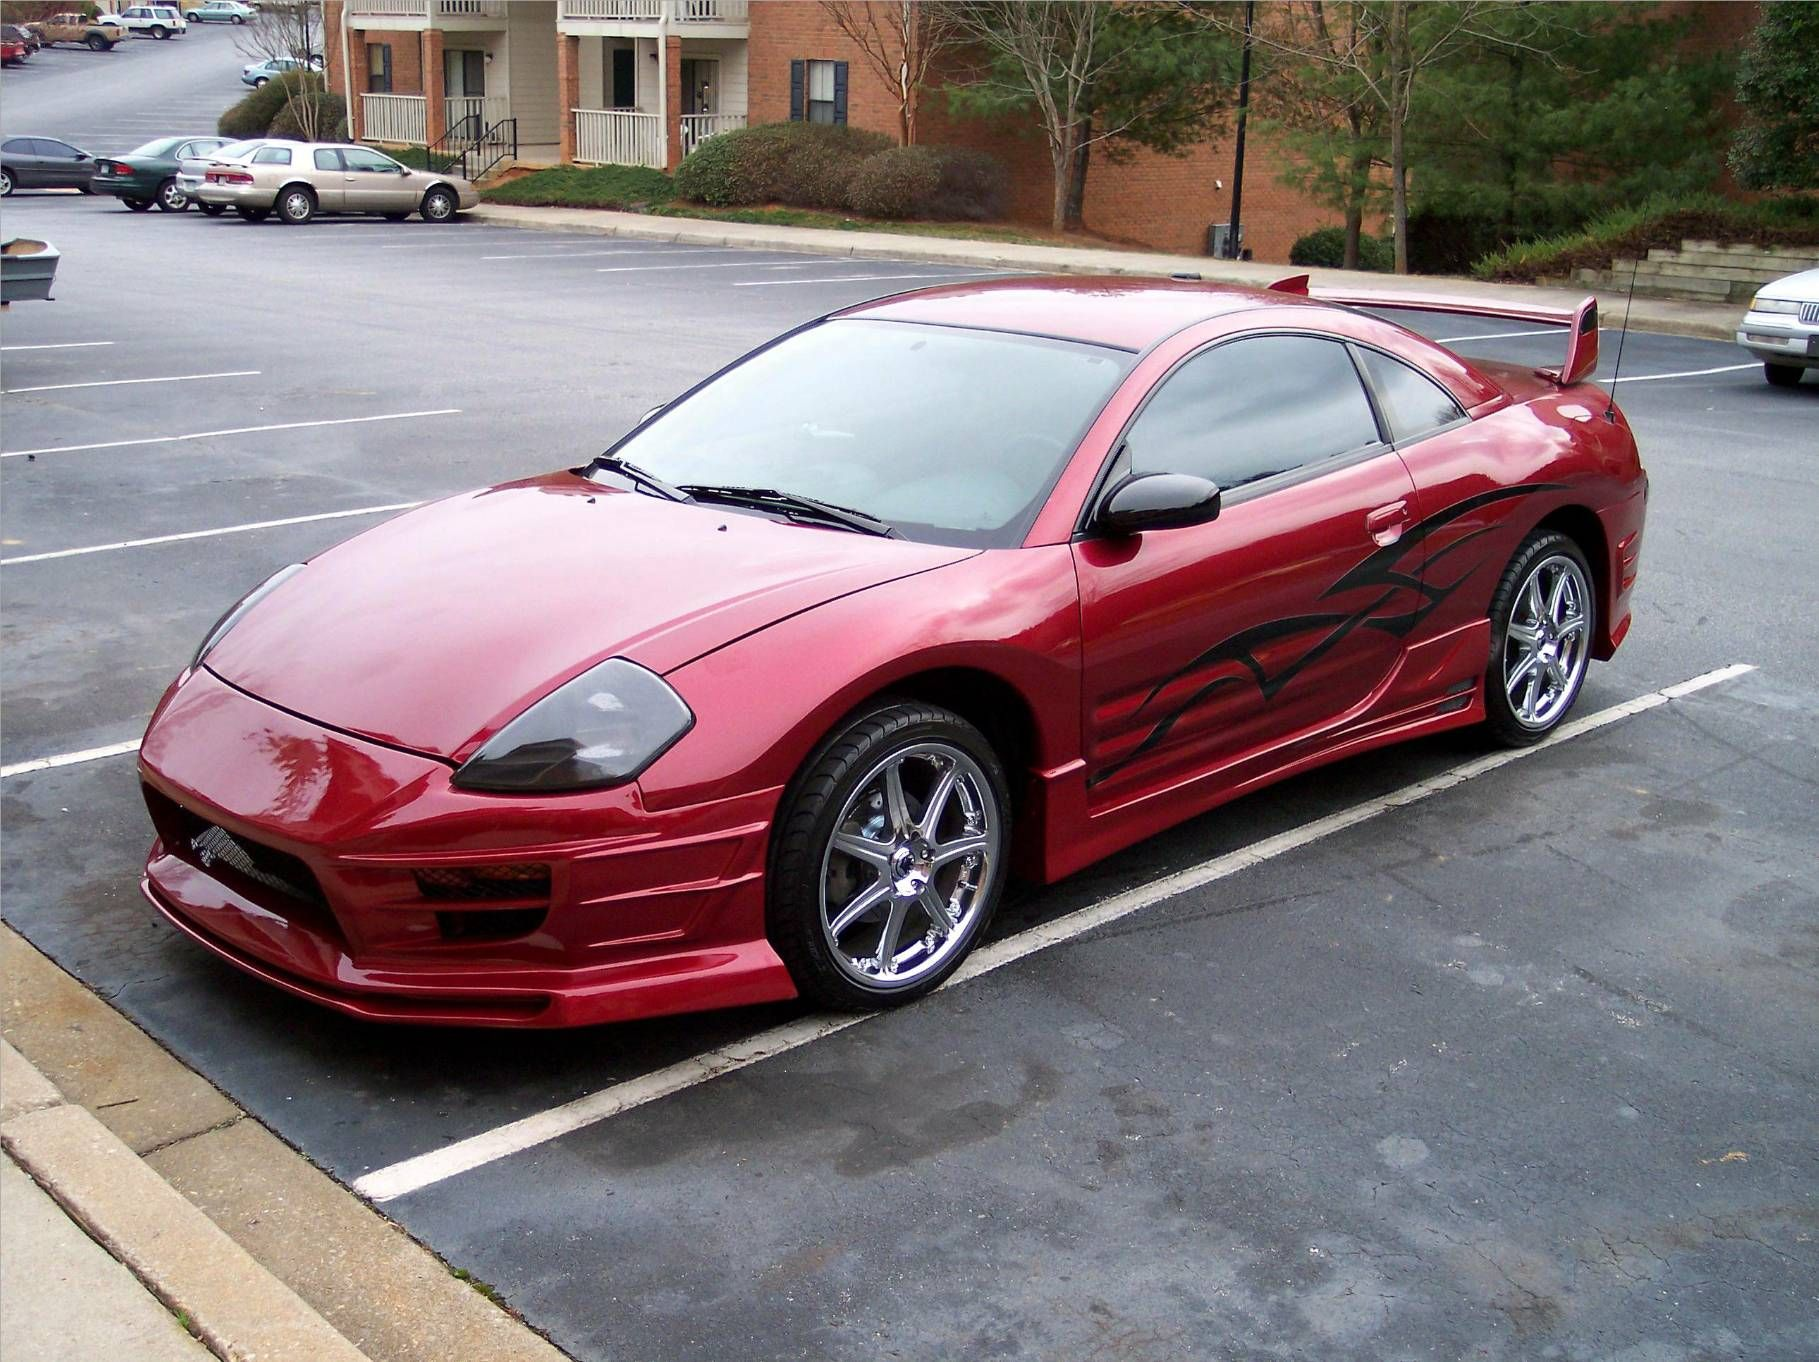 MITSUBISHI ECLIPSE - Review and photos